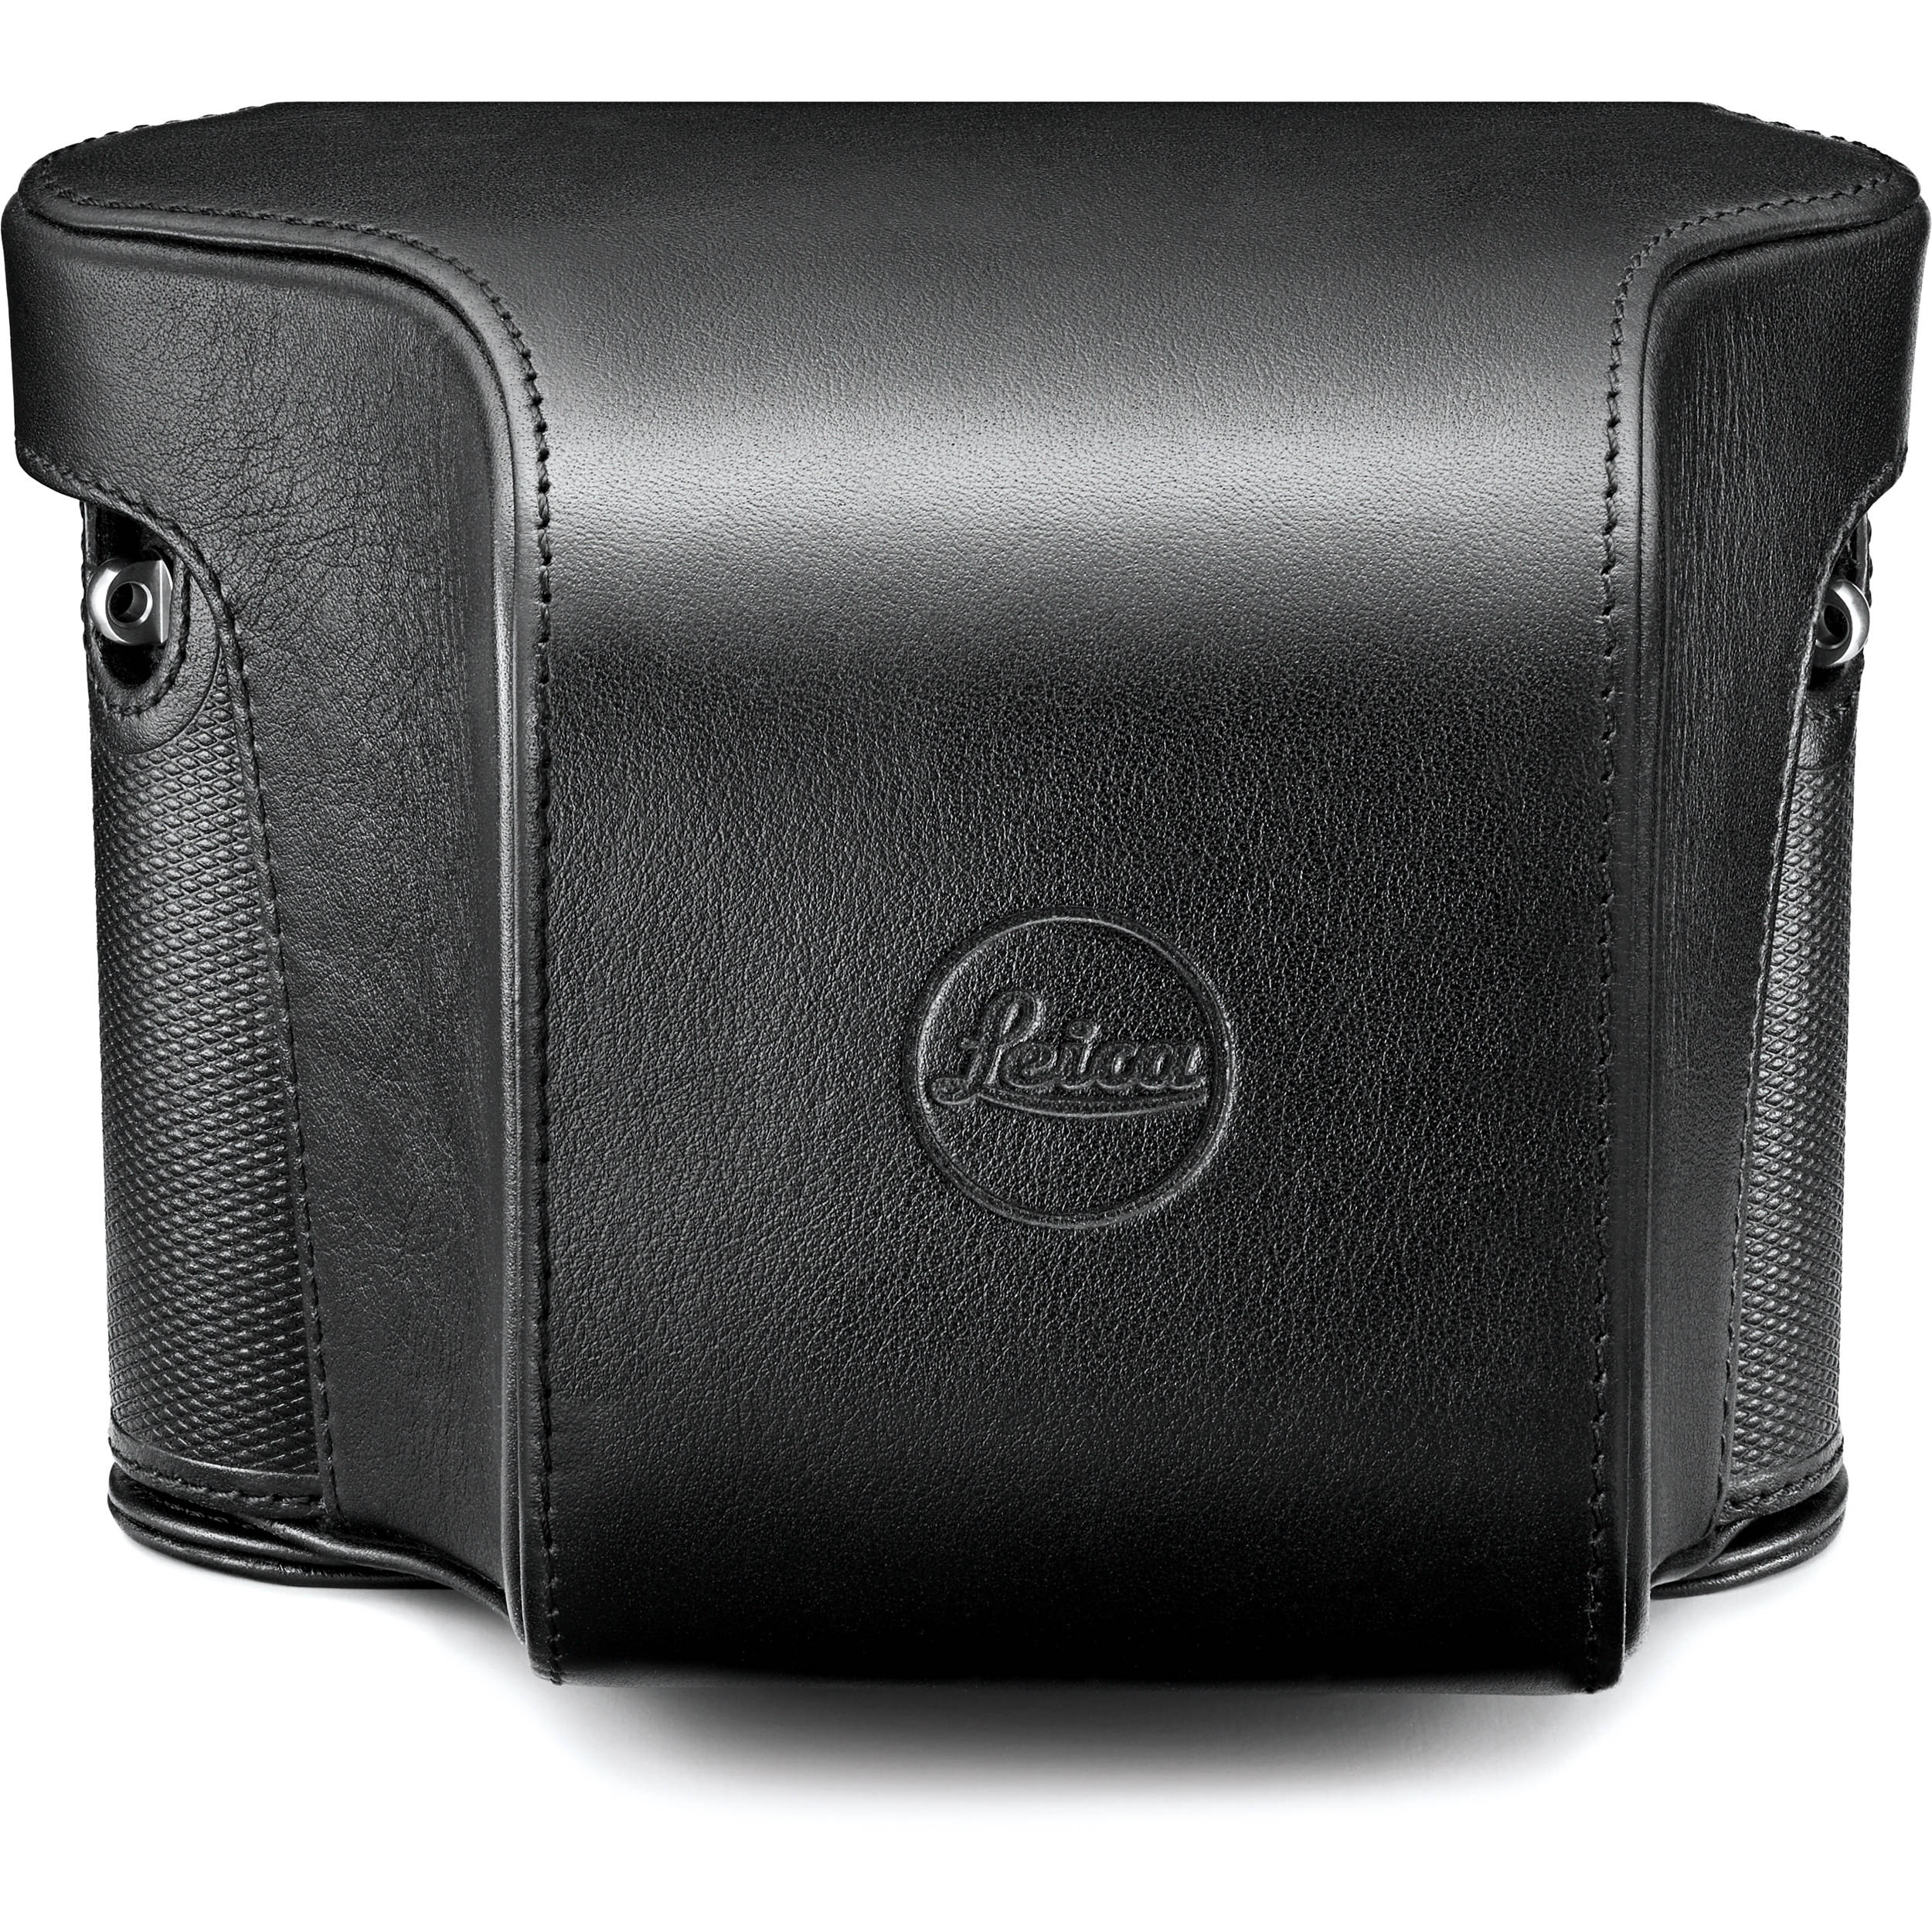 Leica Leica Q Ever-Ready Case for Q Digital Camera 19502 B&H